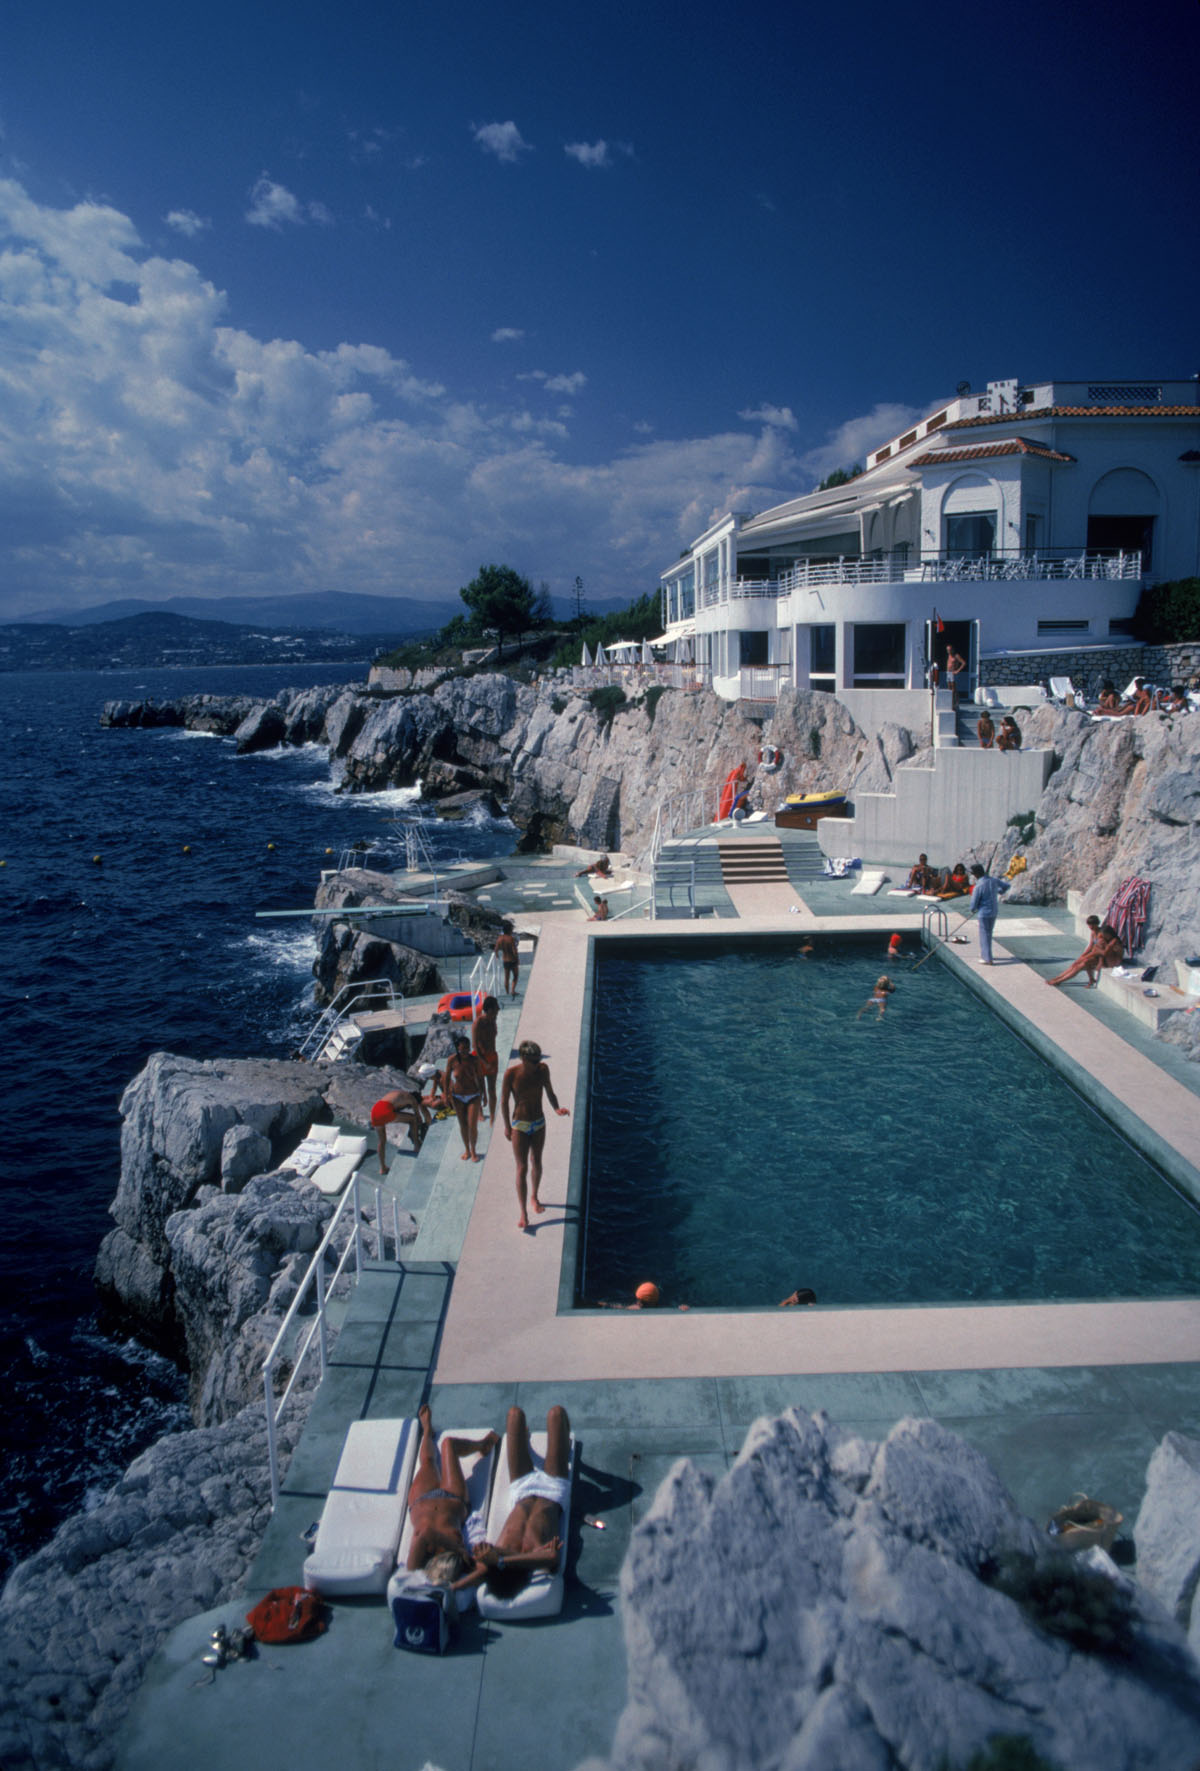 Guests by the pool at the Hotel du Cap Eden-Roc, Antibes, France, August 1976. (Photo by Slim Aarons/Hulton Archive/Getty Images)